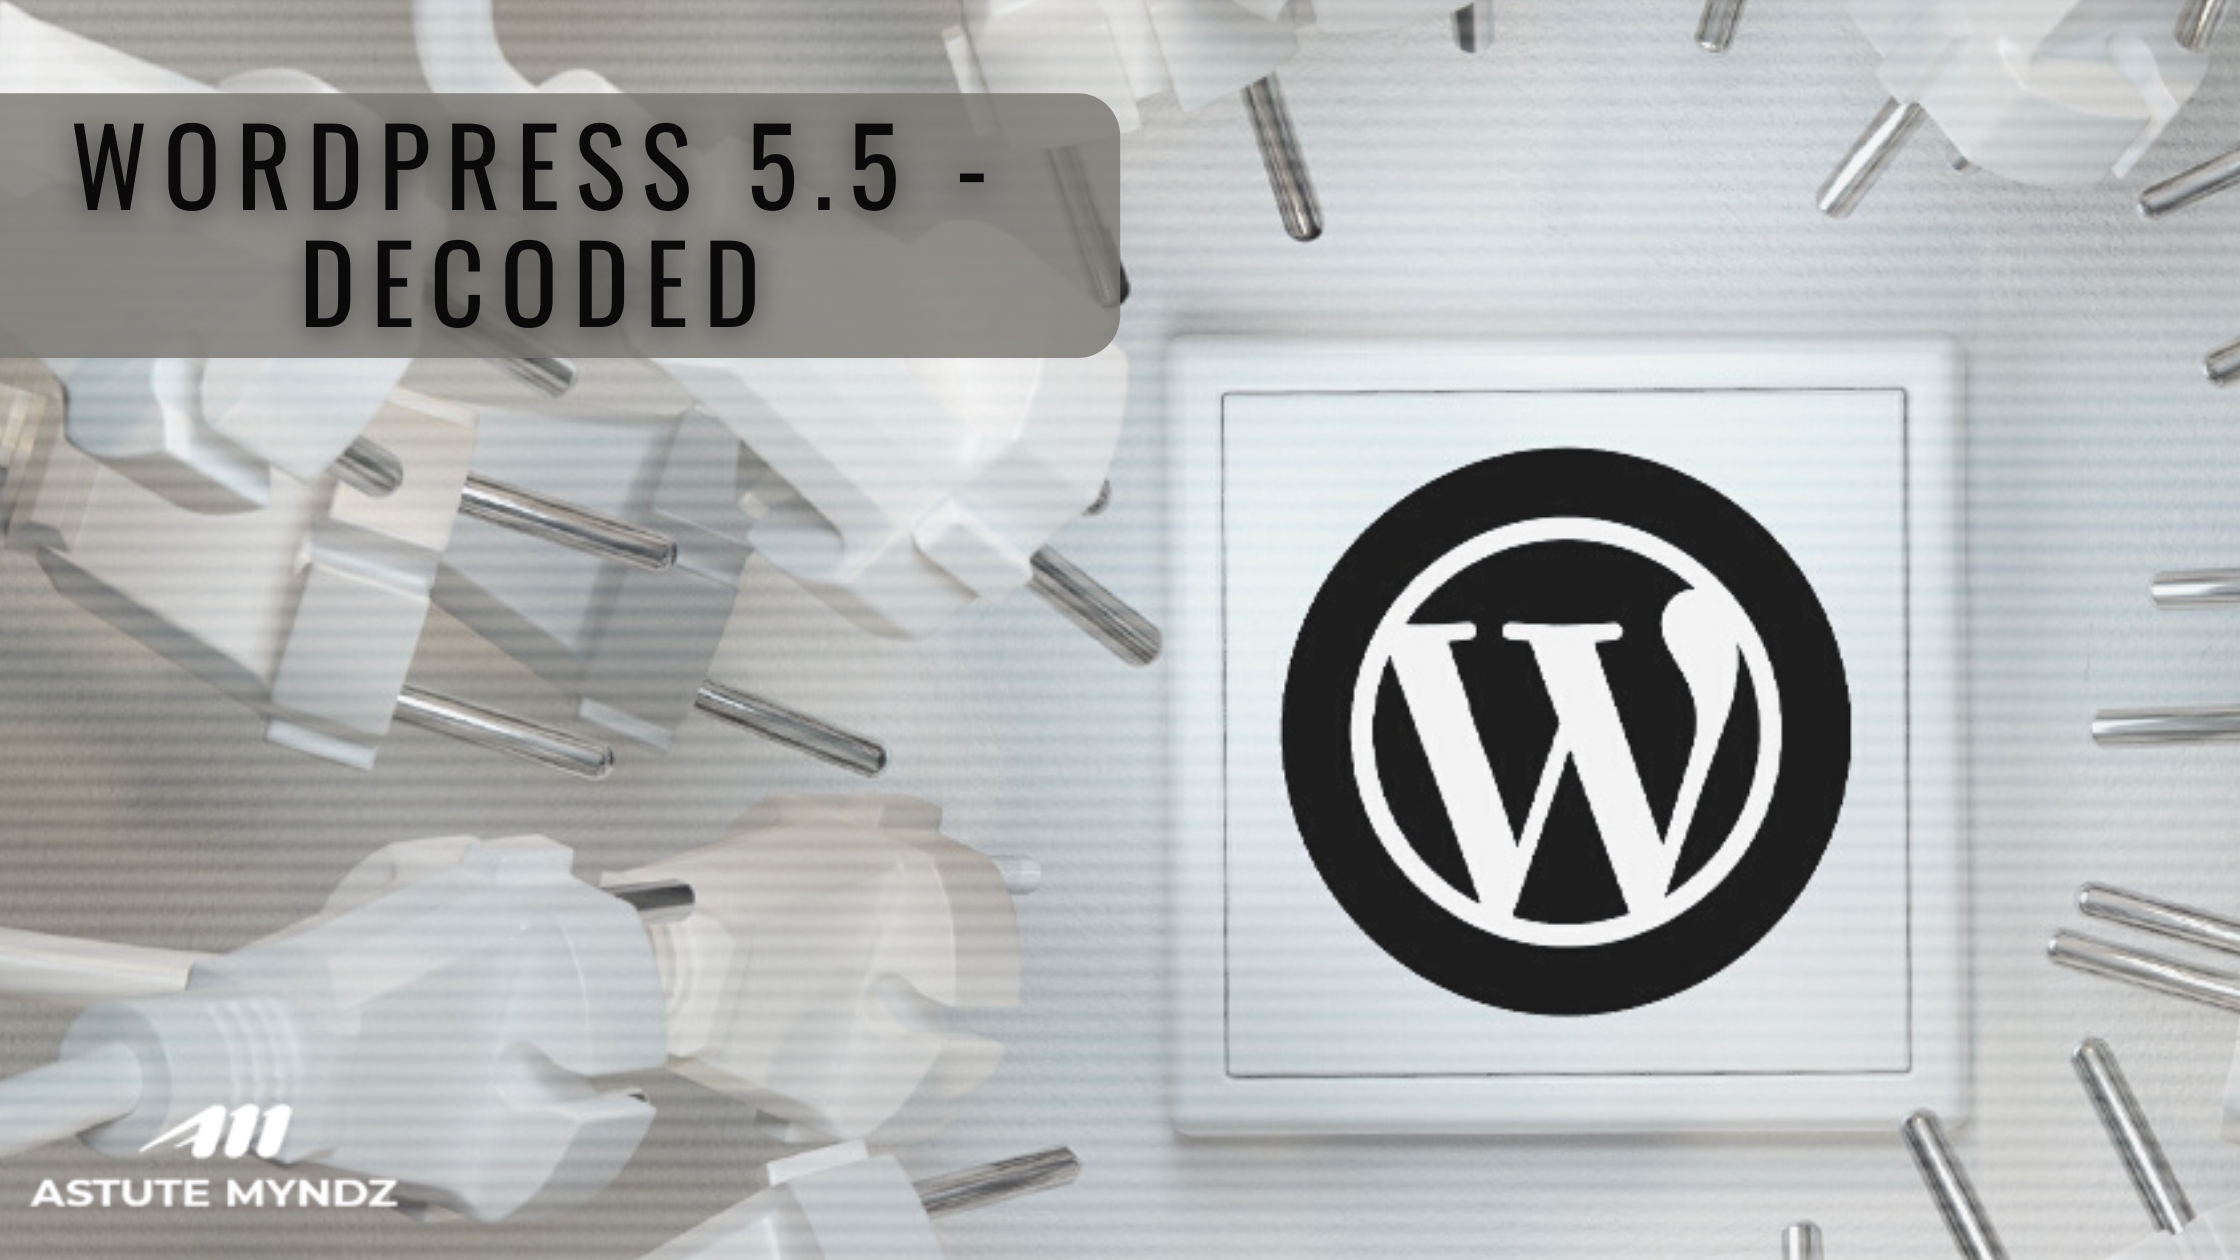 WordPress 5.5 Launched – Here is Everything You Need to Know About It